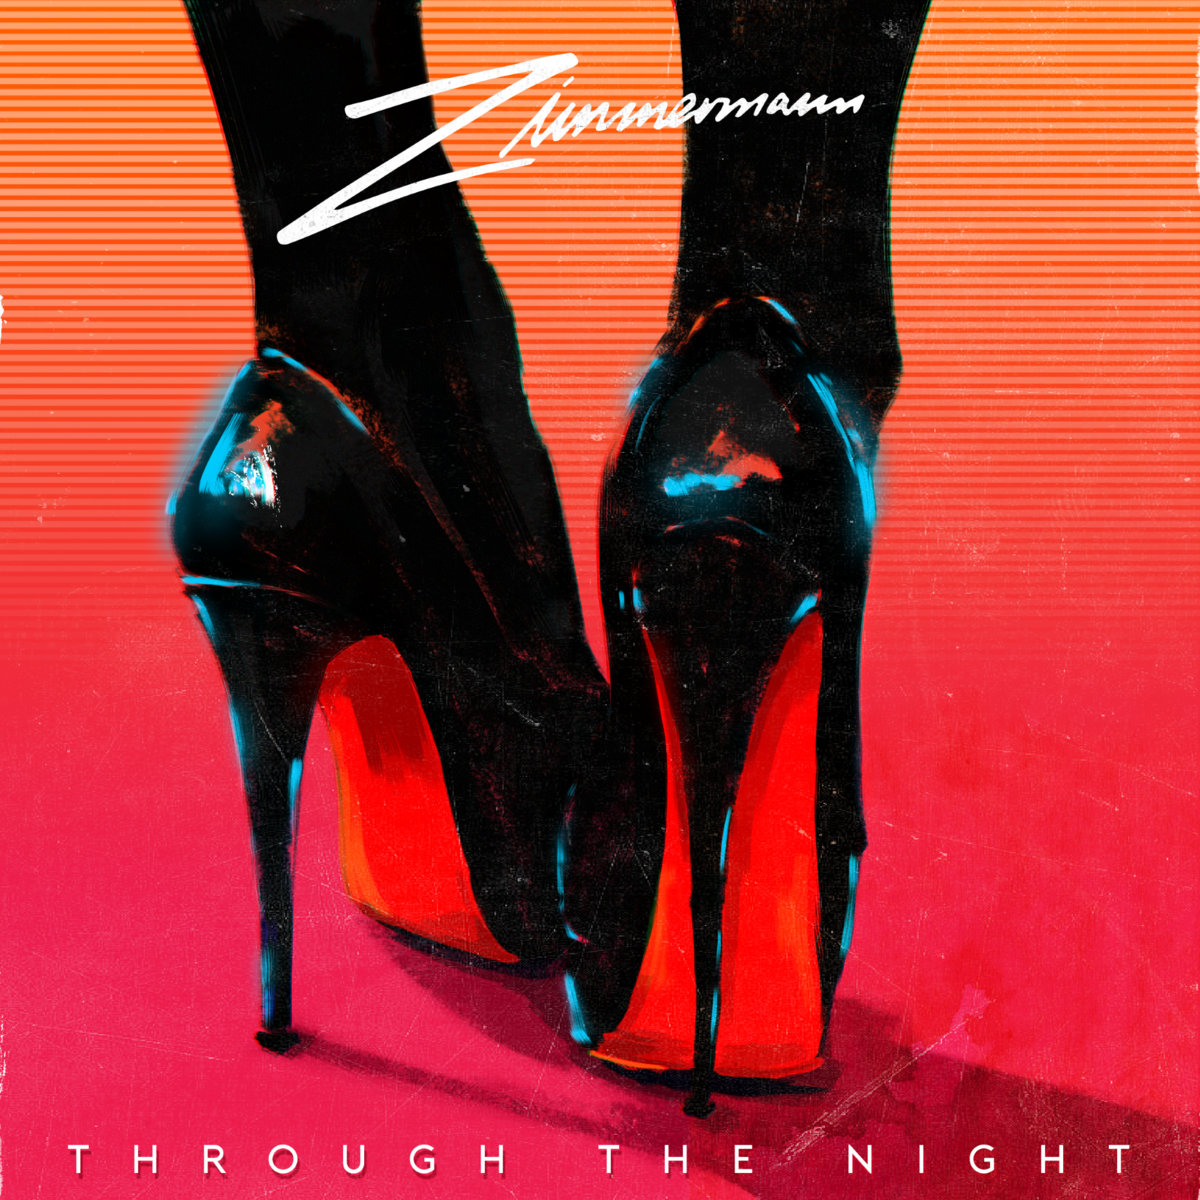 a0539824827 10 - Peter Zimmermann - Through the Night (Part 1)